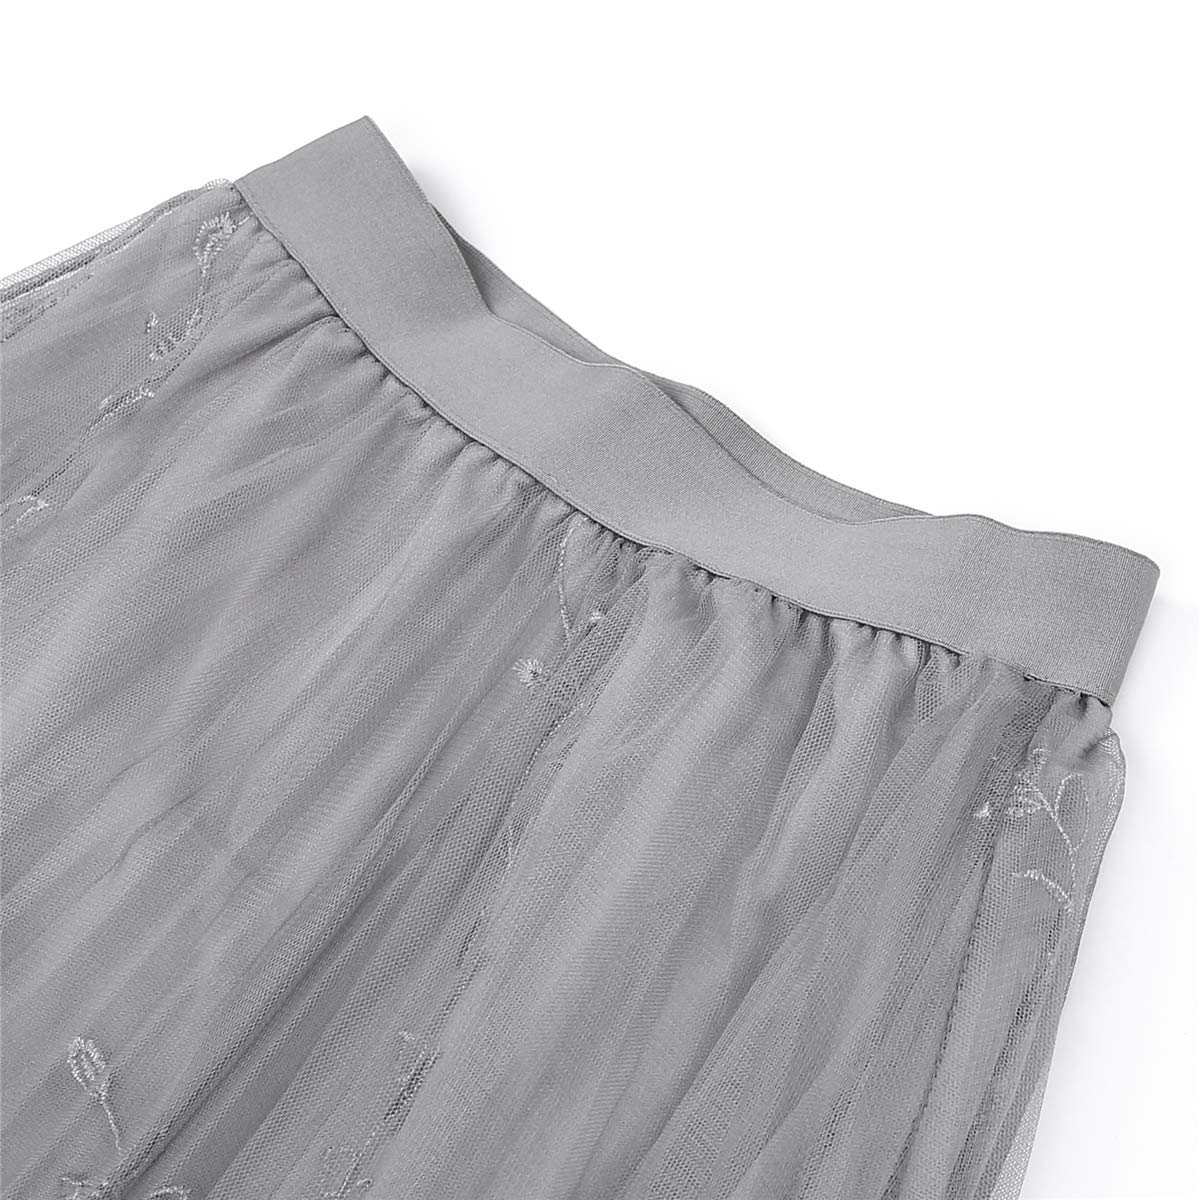 UBeetp Womens Lace Tulle Pleated Party Dress Girls Mesh A-line Midi Skirt